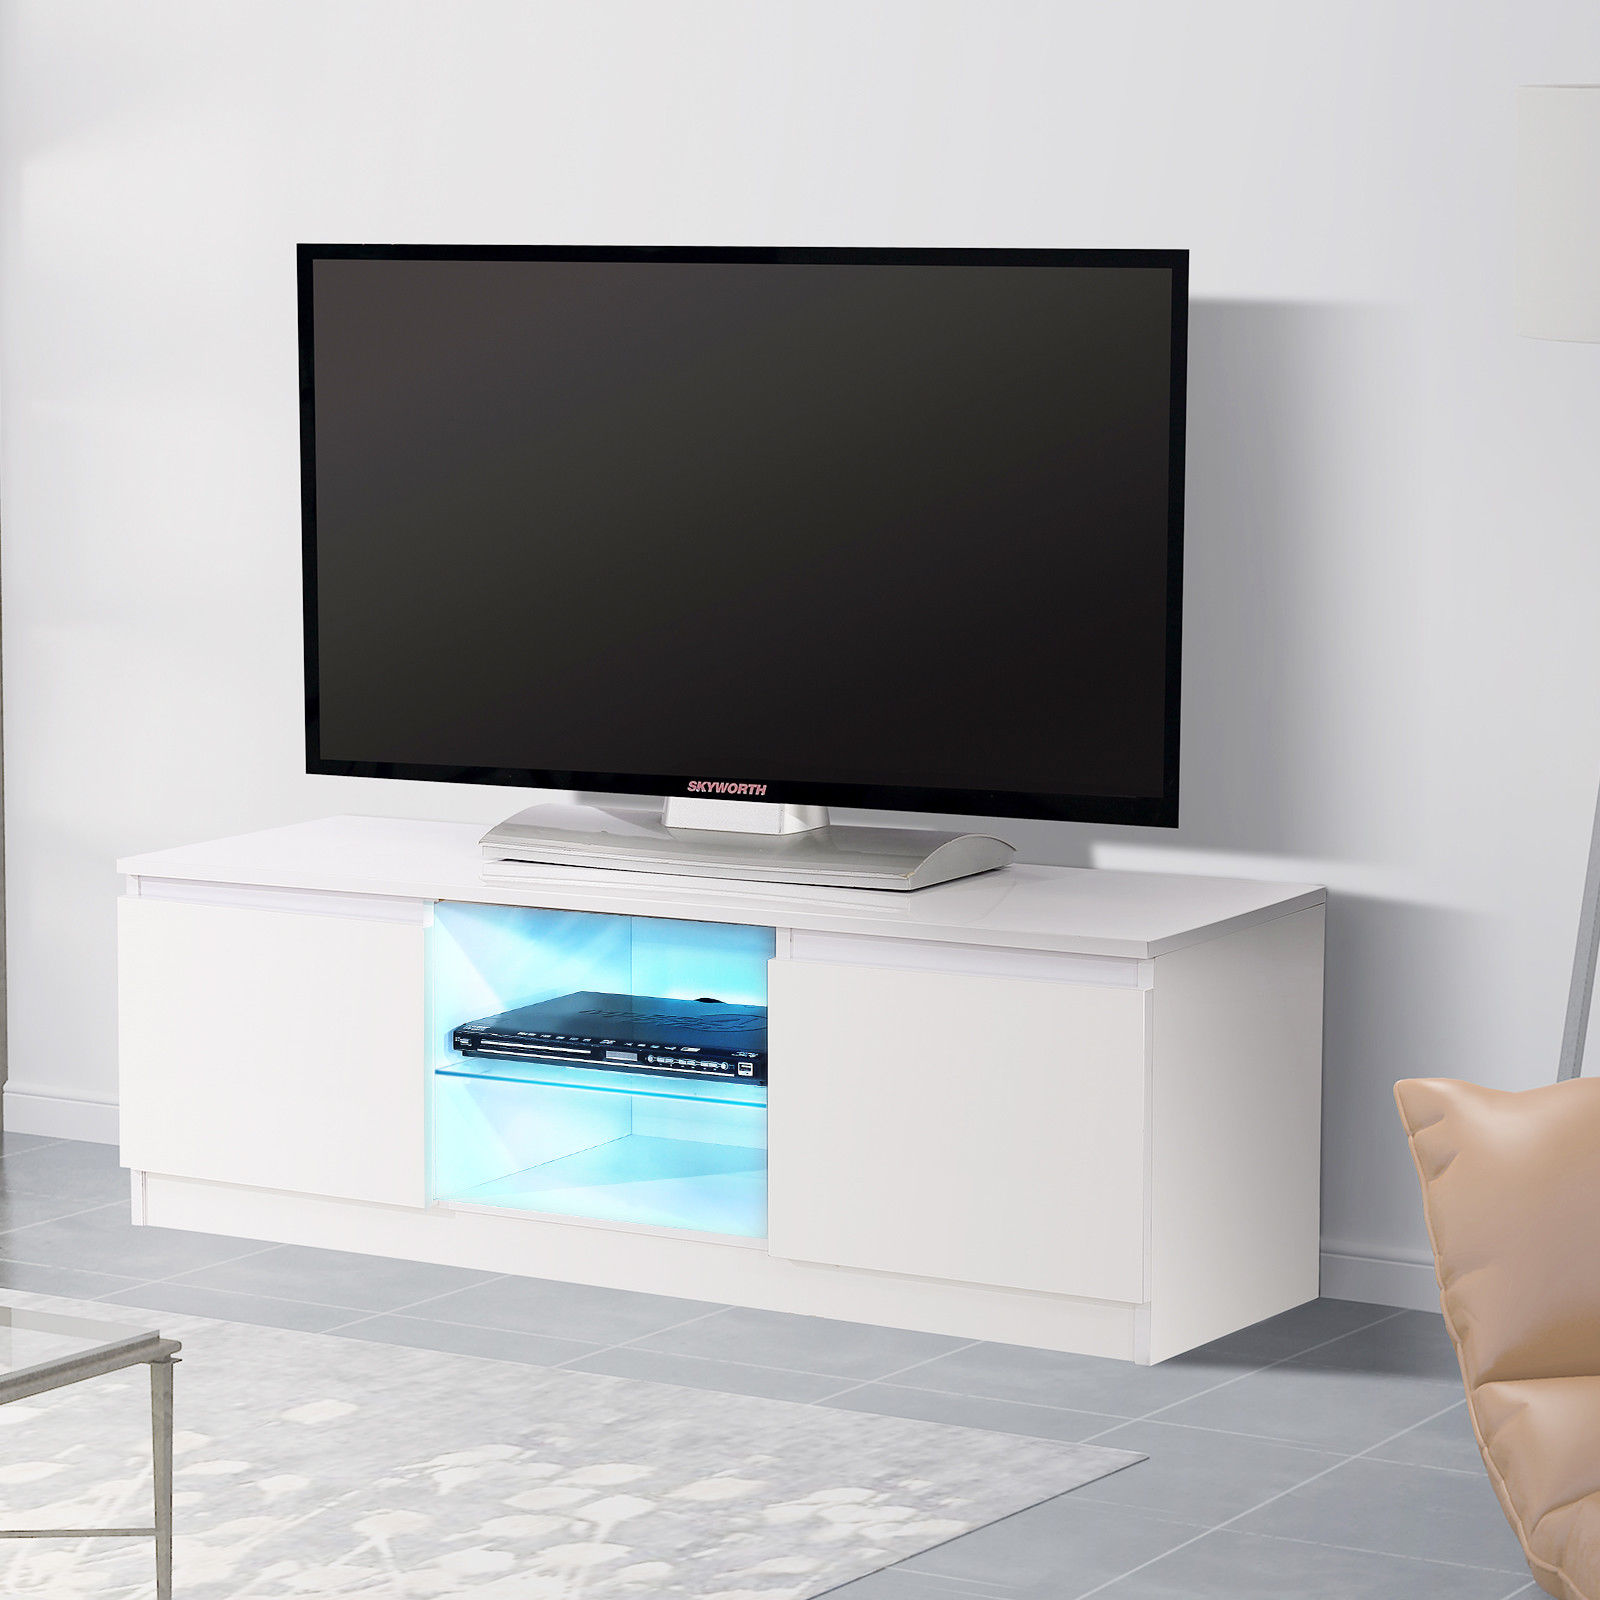 Beau Details About White High Gloss TV Stand Unit Cabinet W/ LED Light Shelves 2  Drawers Furniture